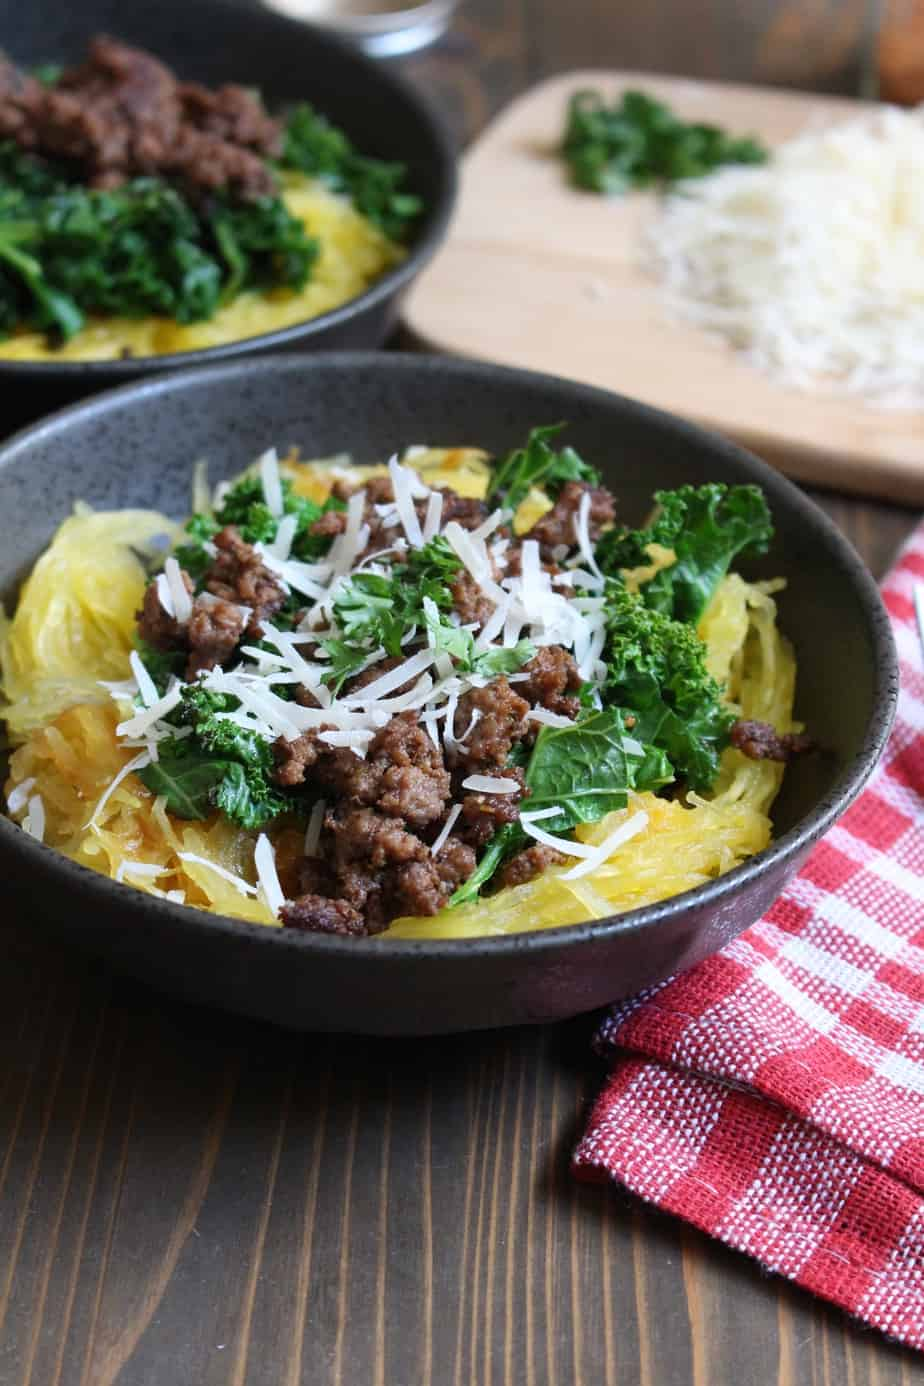 Spaghetti Squash Bowl with Ground Beef and Kale | Frugal Nutrition